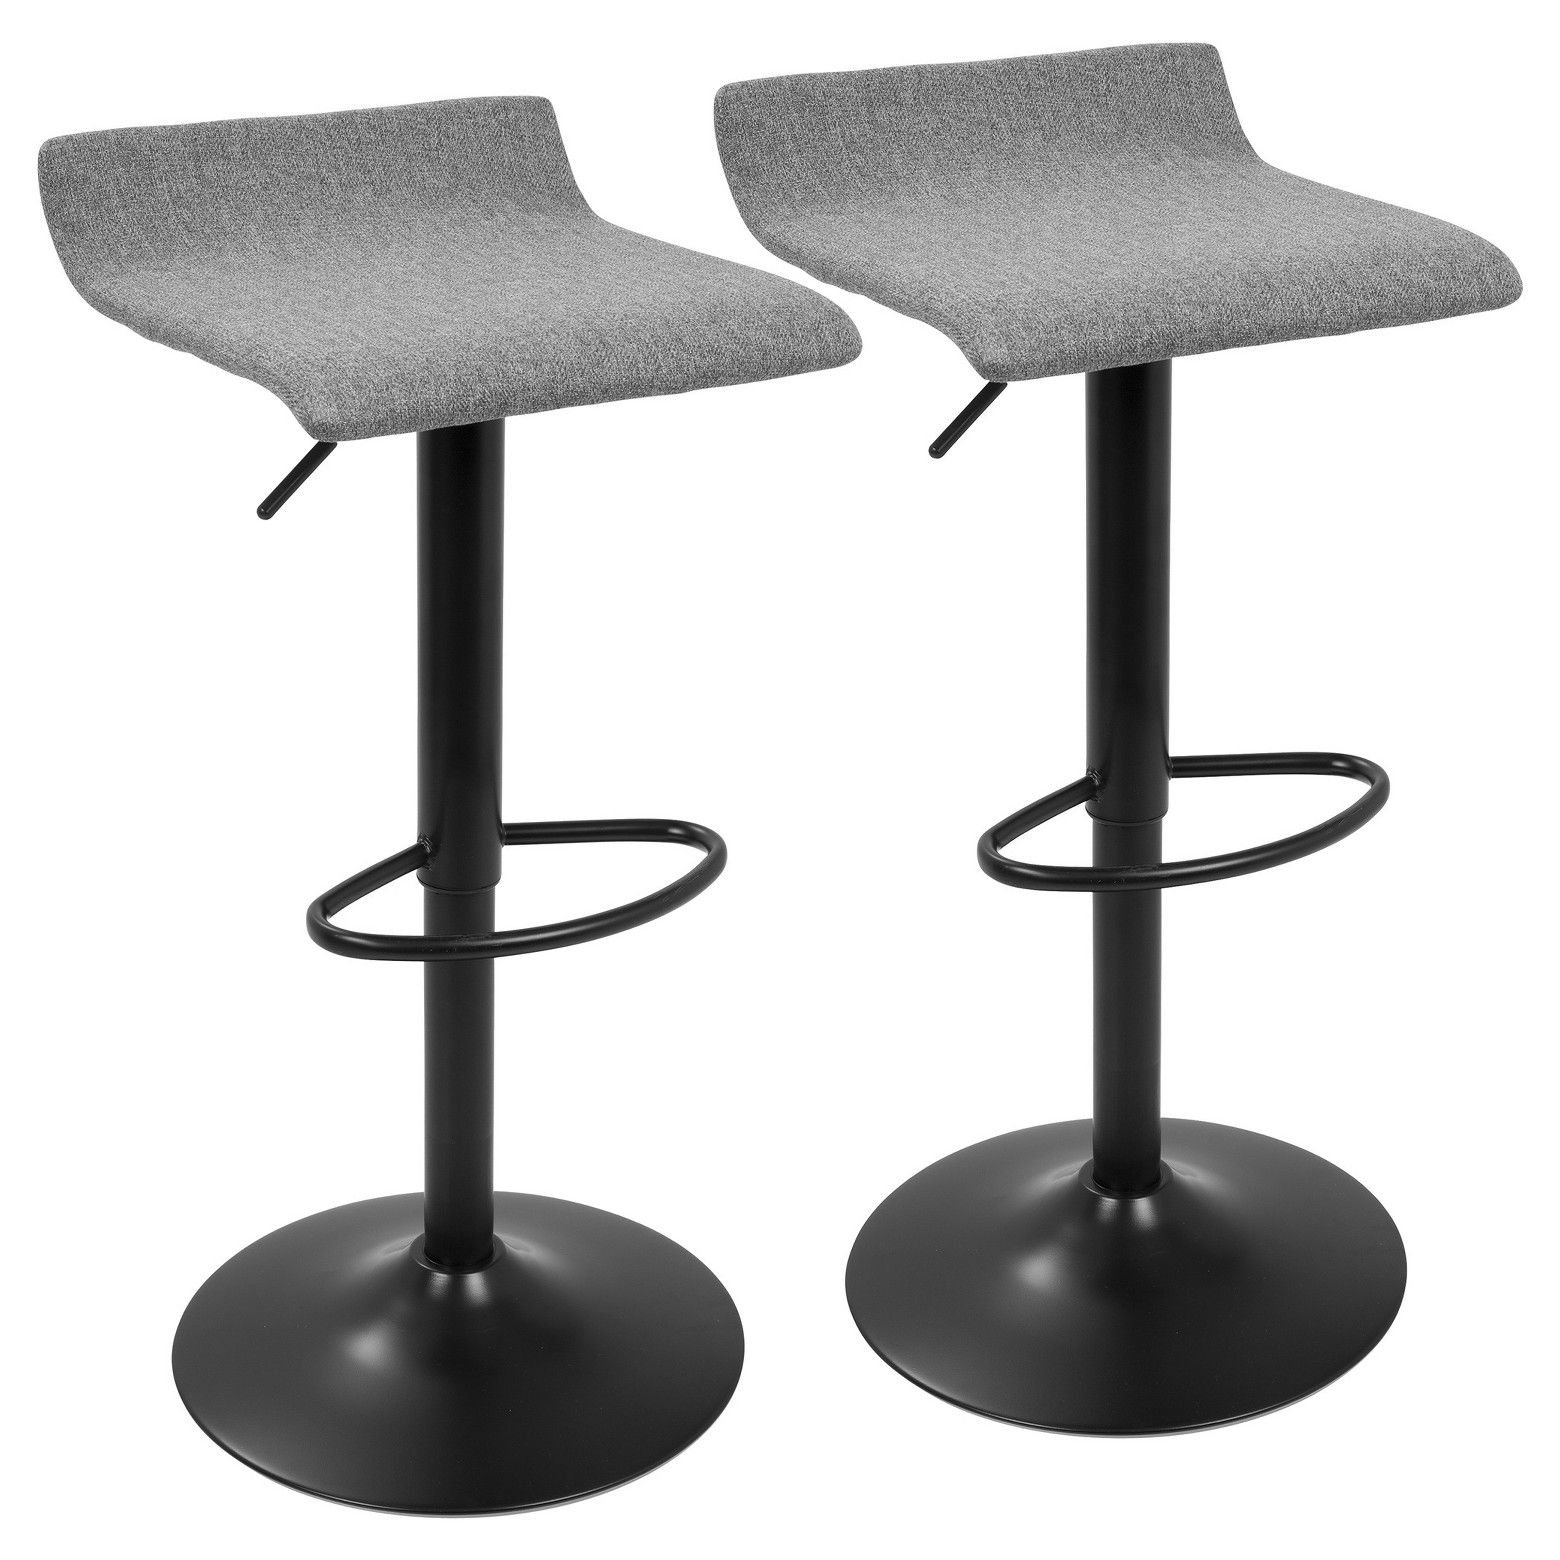 Set Of 2 Ale Xl Contemporary Adjustable Barstool Black And Gray